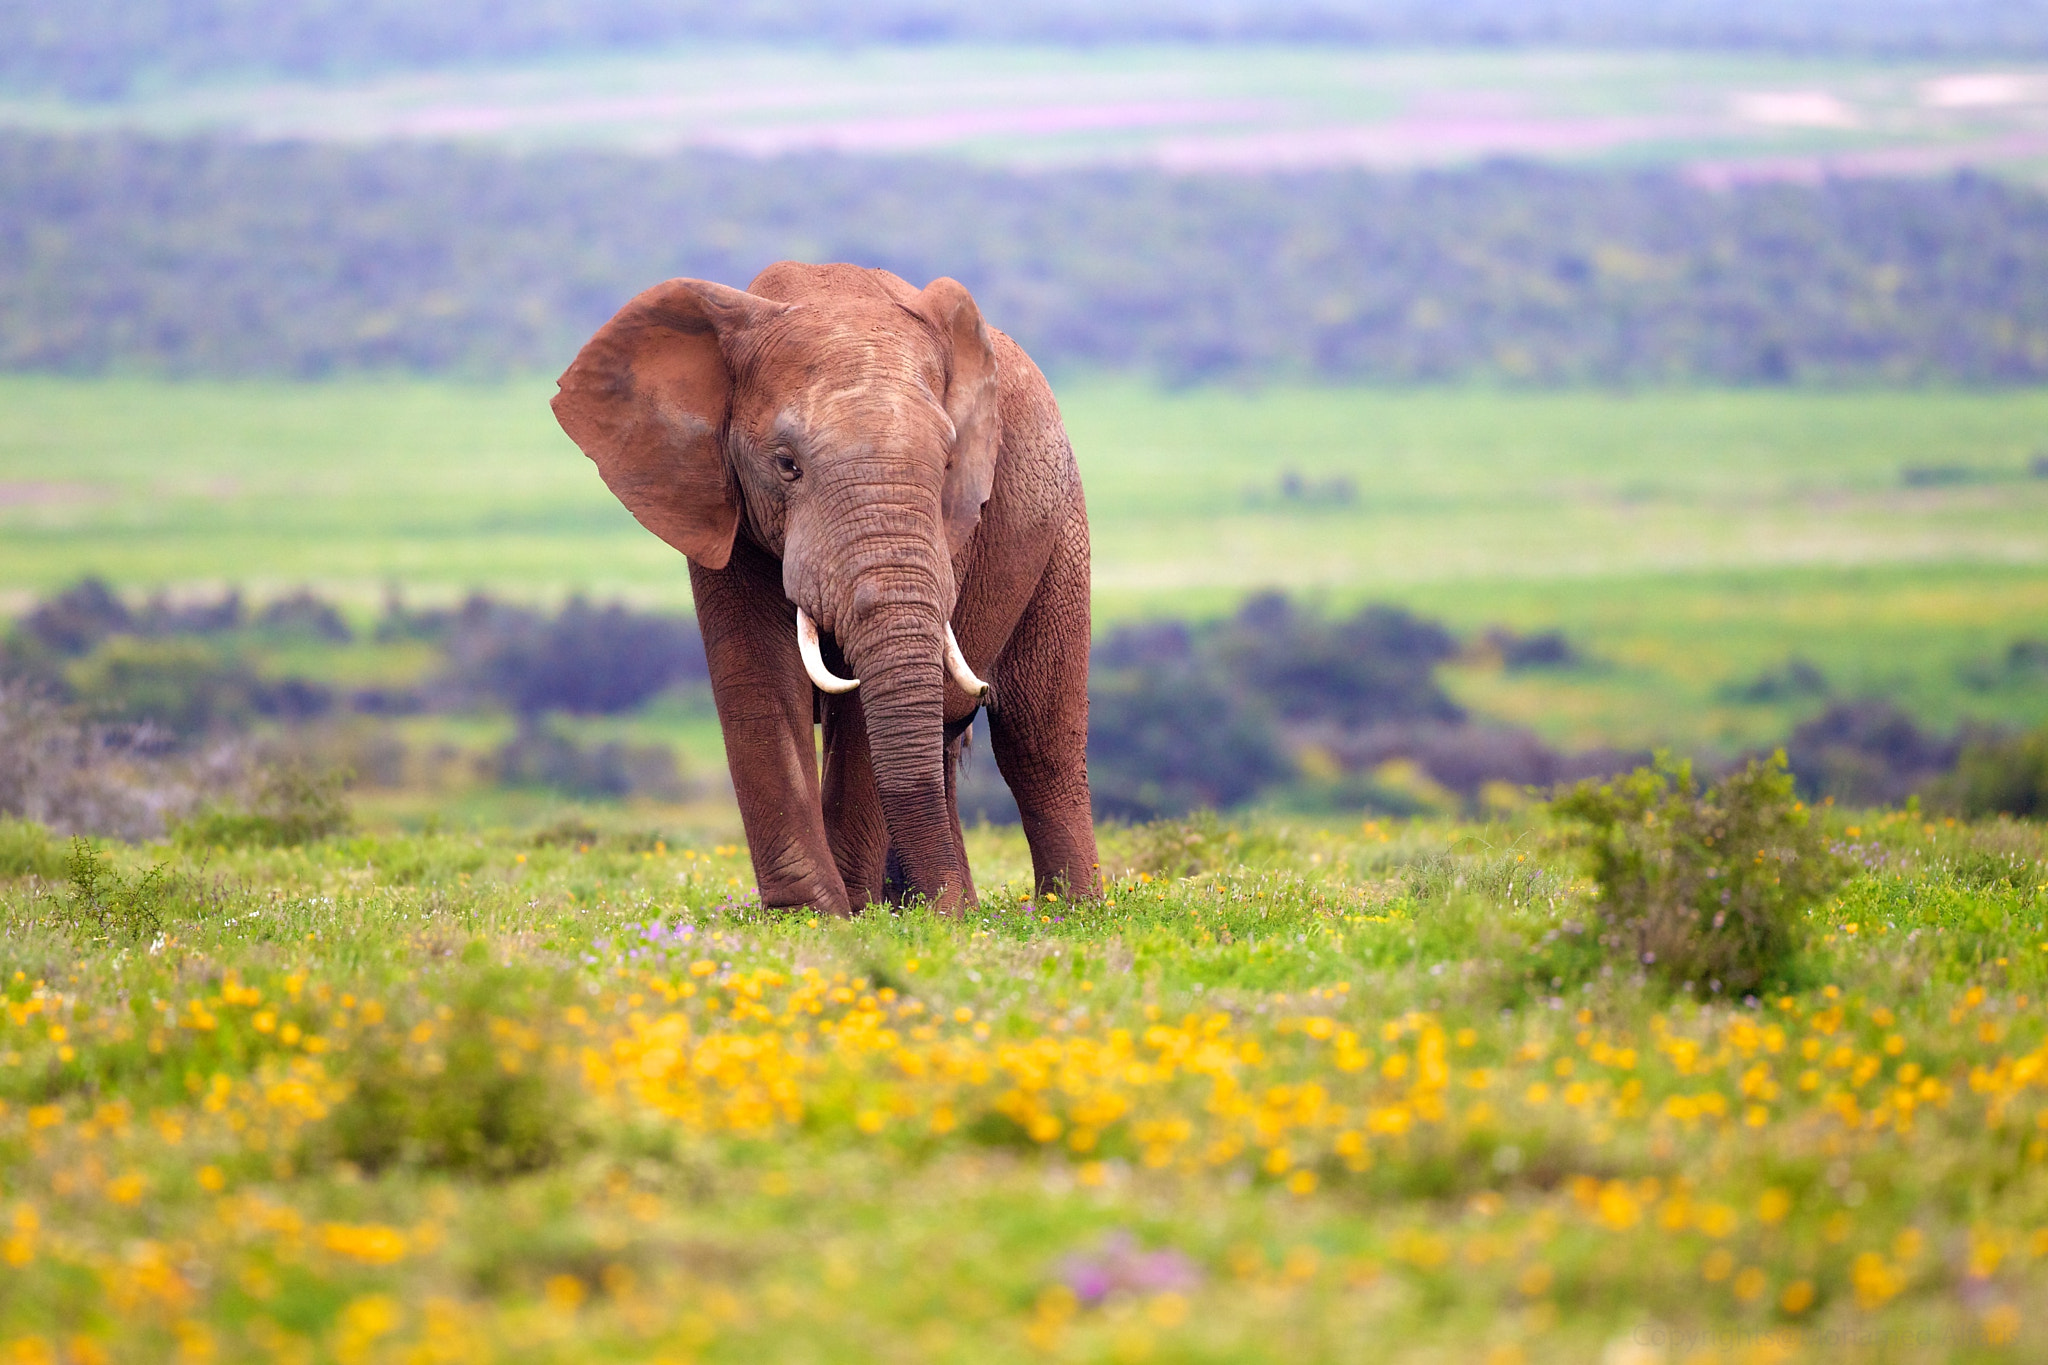 Photograph Elephant & the Yellow Flowers by Mohamed  Al Faris on 500px